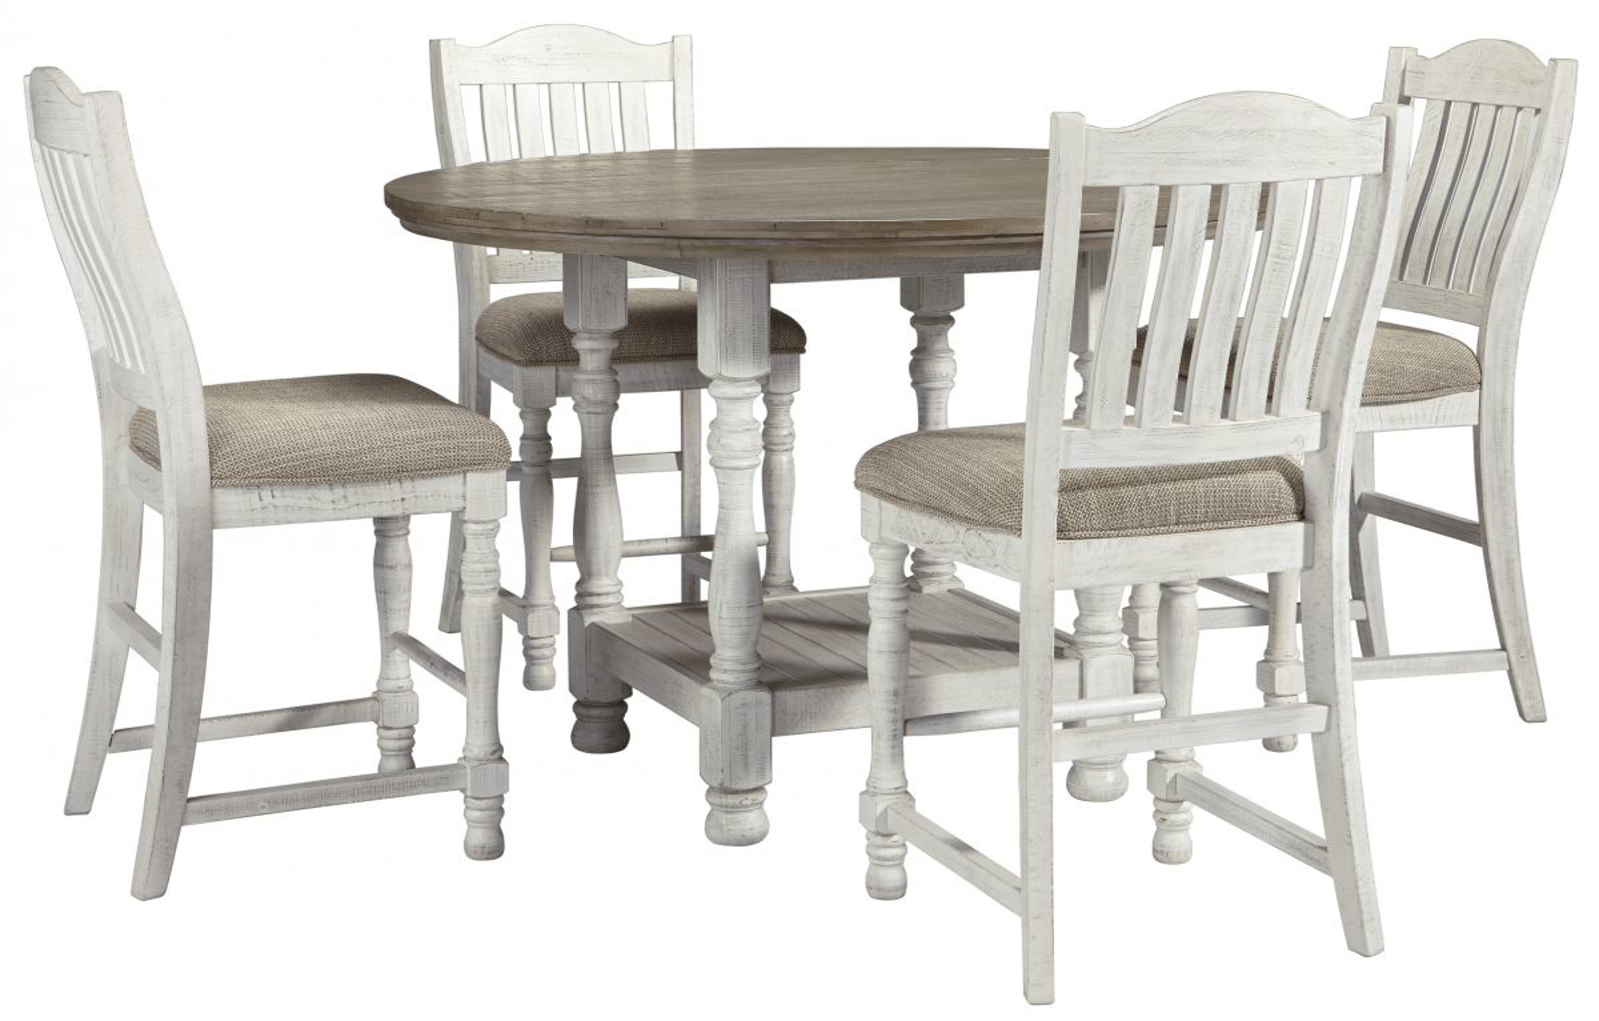 Picture of Havalance Pub Table & 4 Stools